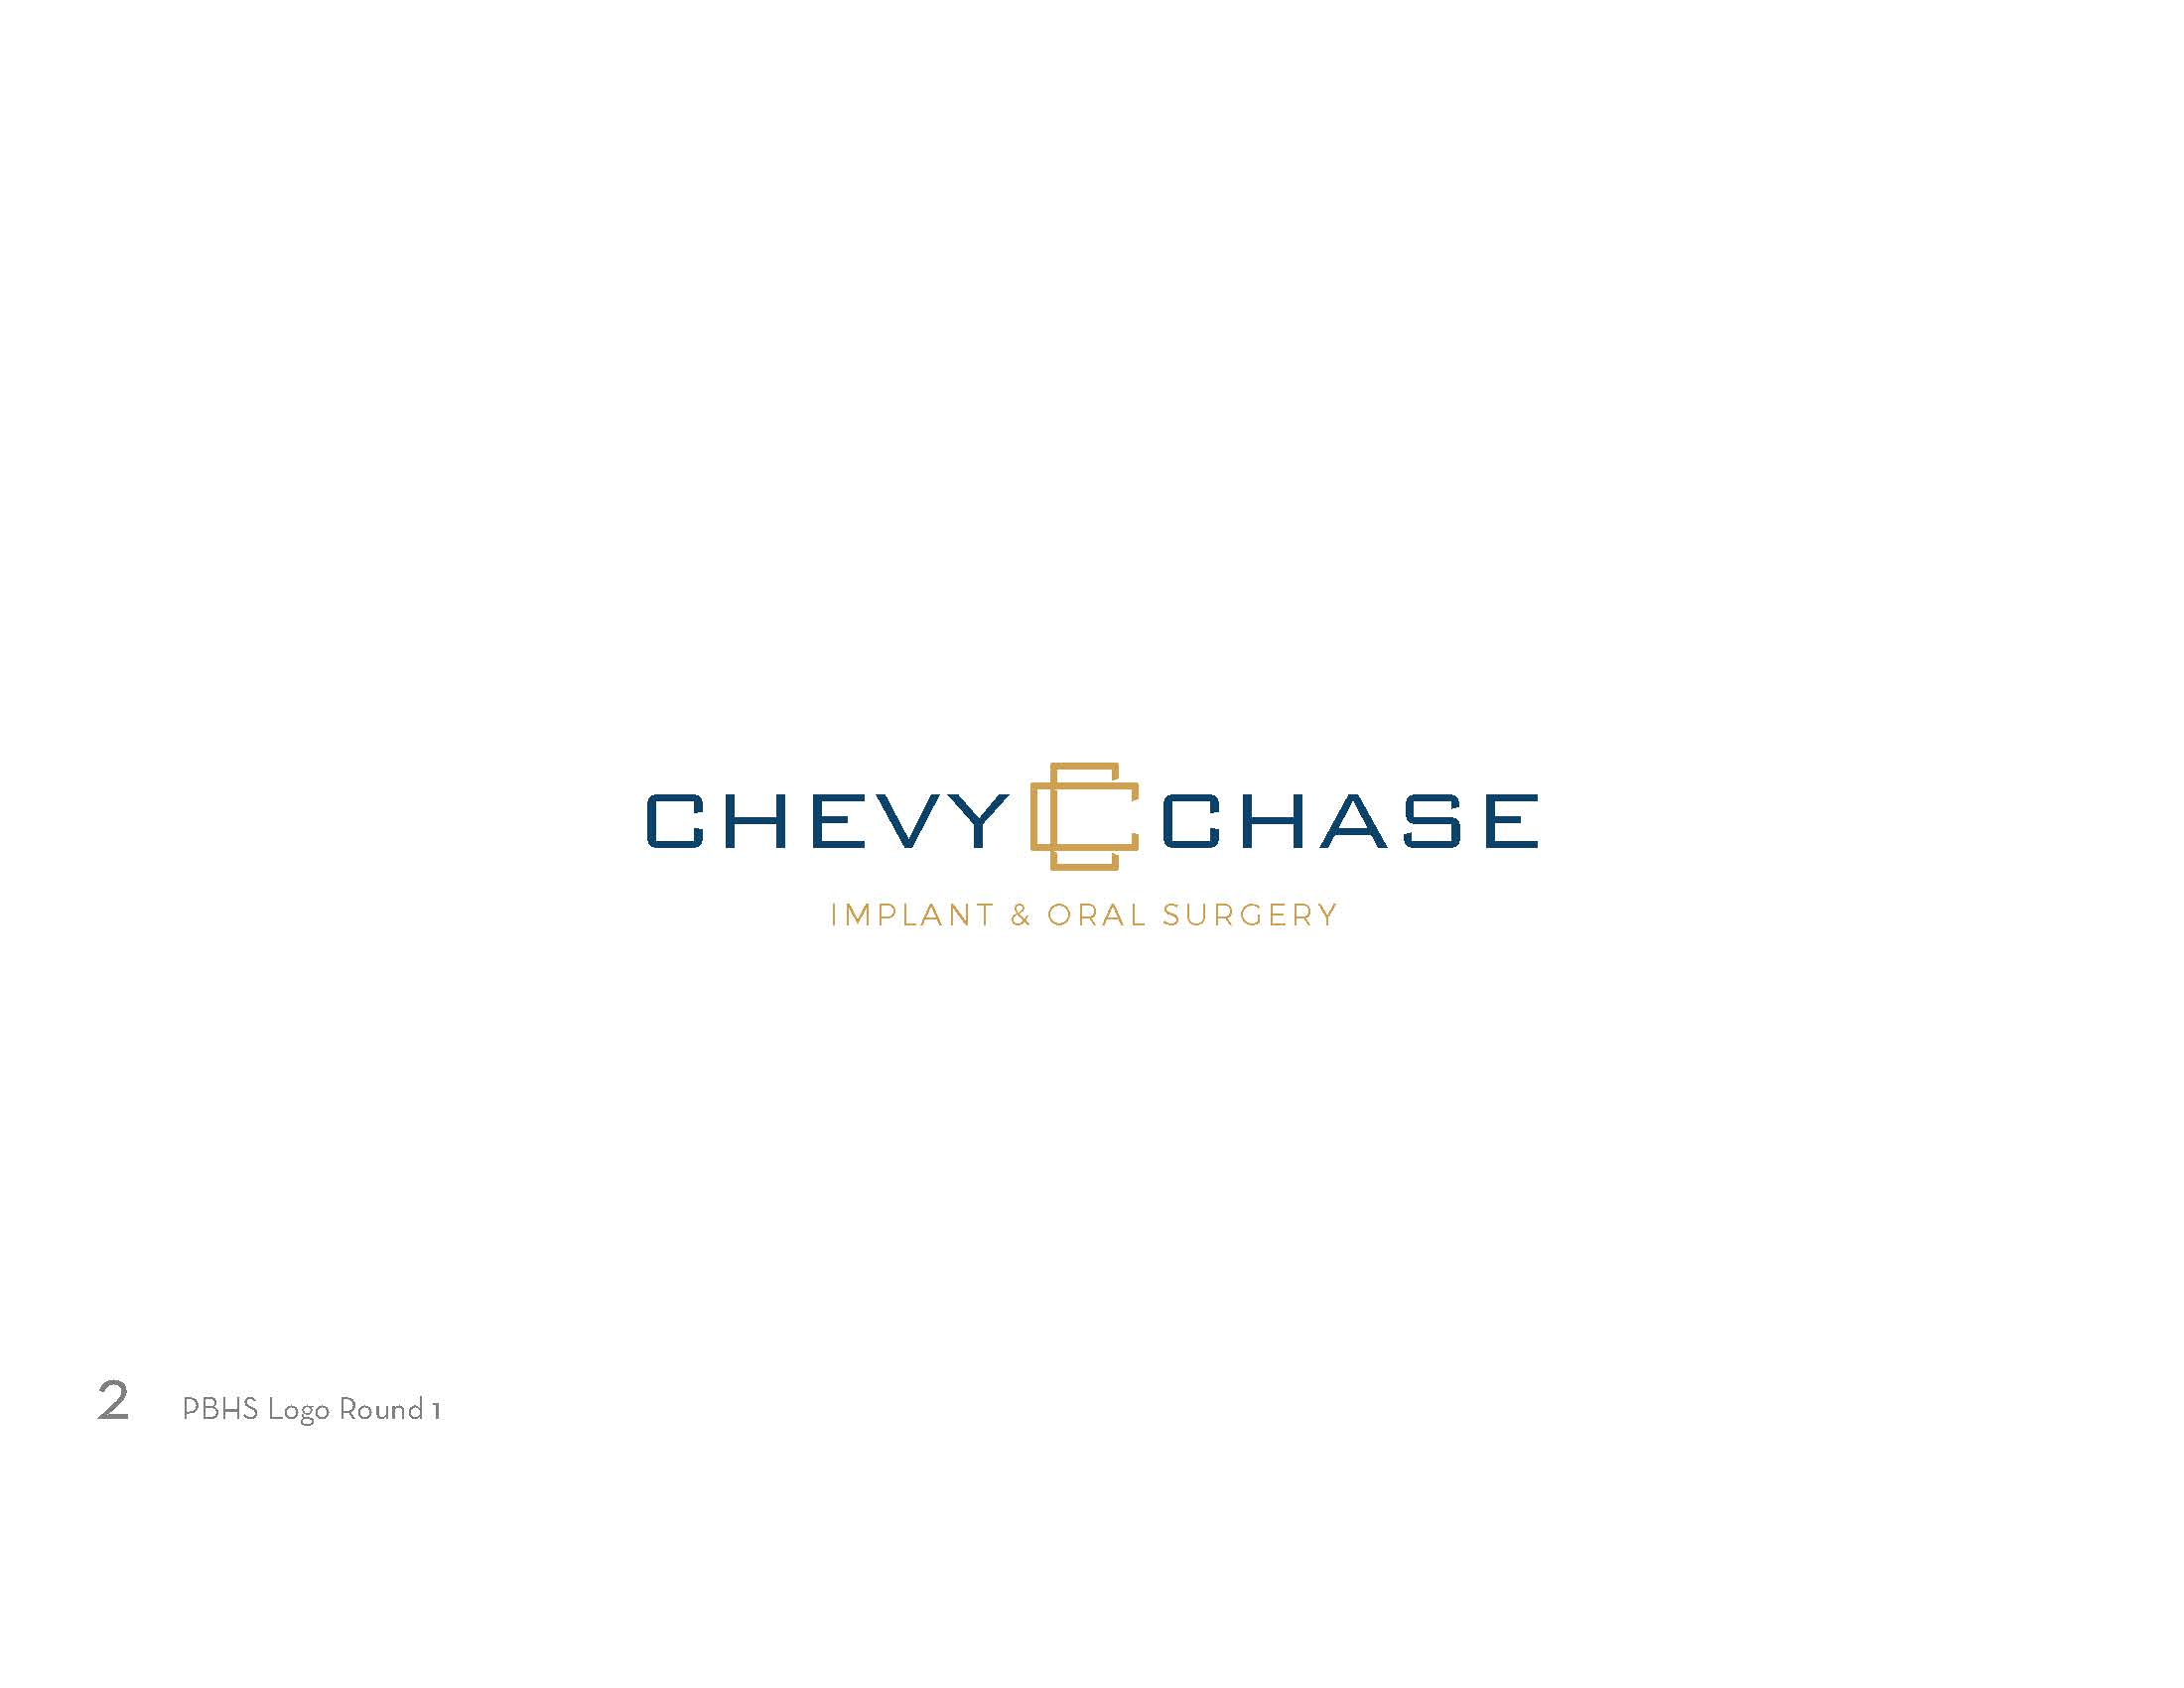 Chevy Chase Implant & Oral Surgery reviews | 5550 Friendship Blvd Suite 250 - Chevy Chase MD